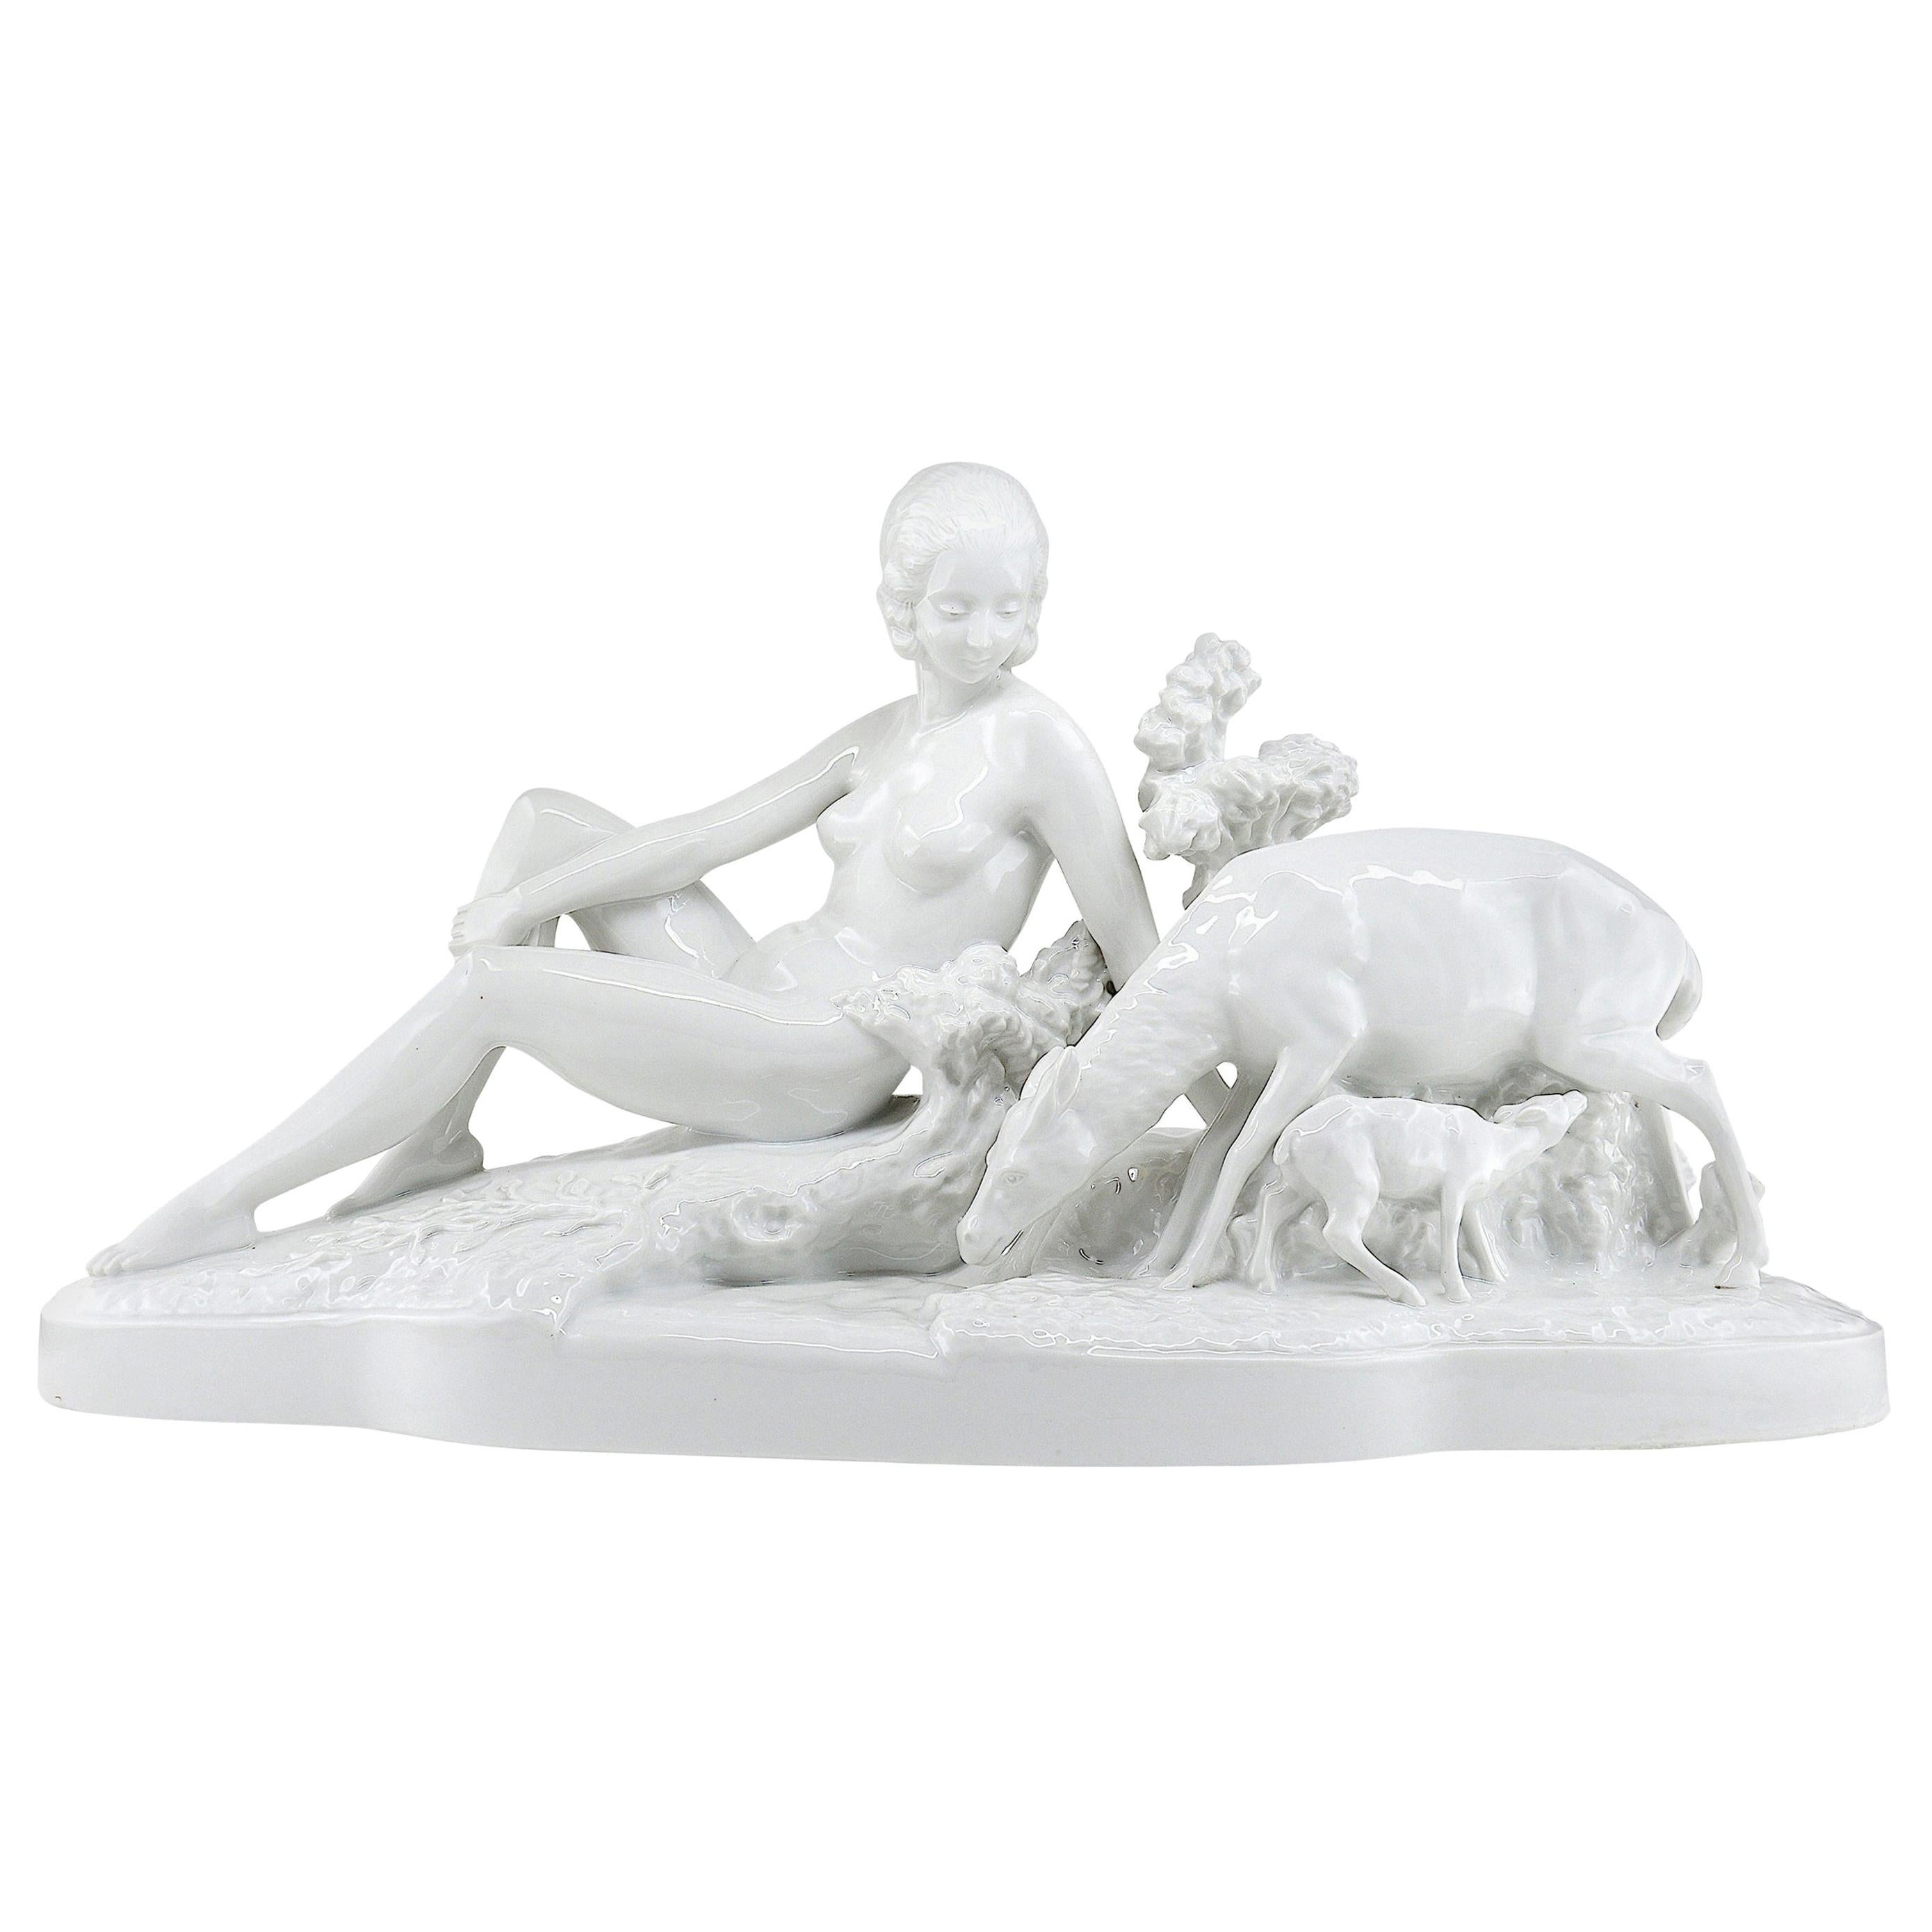 Bohumil Rezl French Art Deco Sculpture in Glazed Porcelain Biscuit, Late 1920s